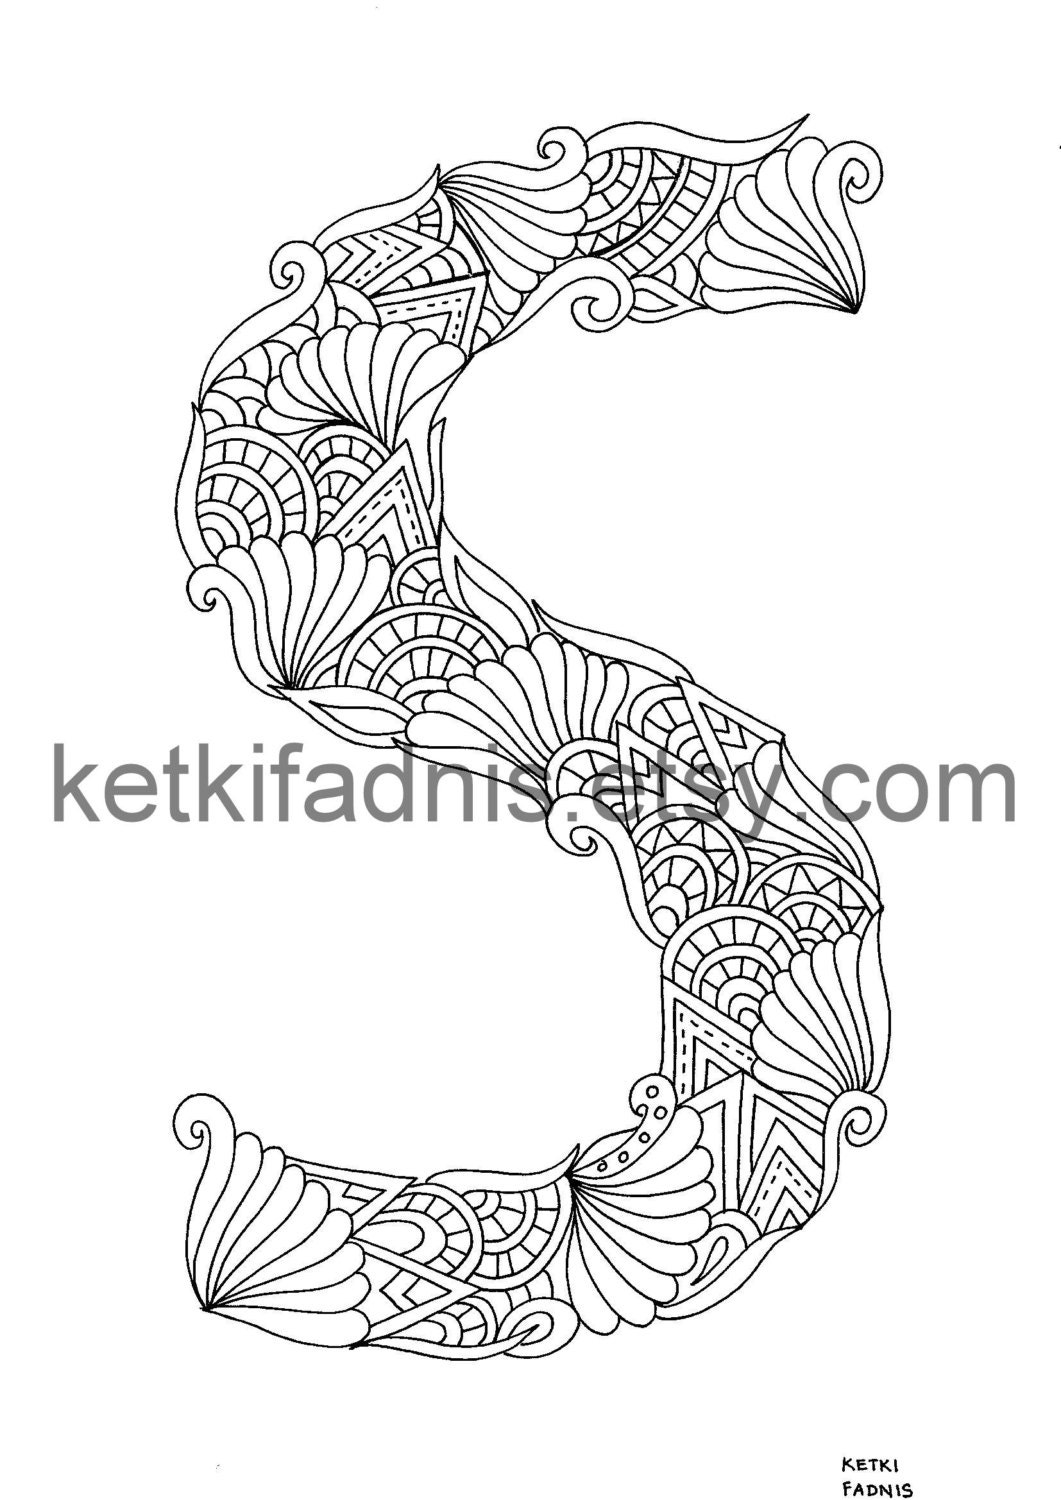 Coloring book download zip - This Is A Digital File